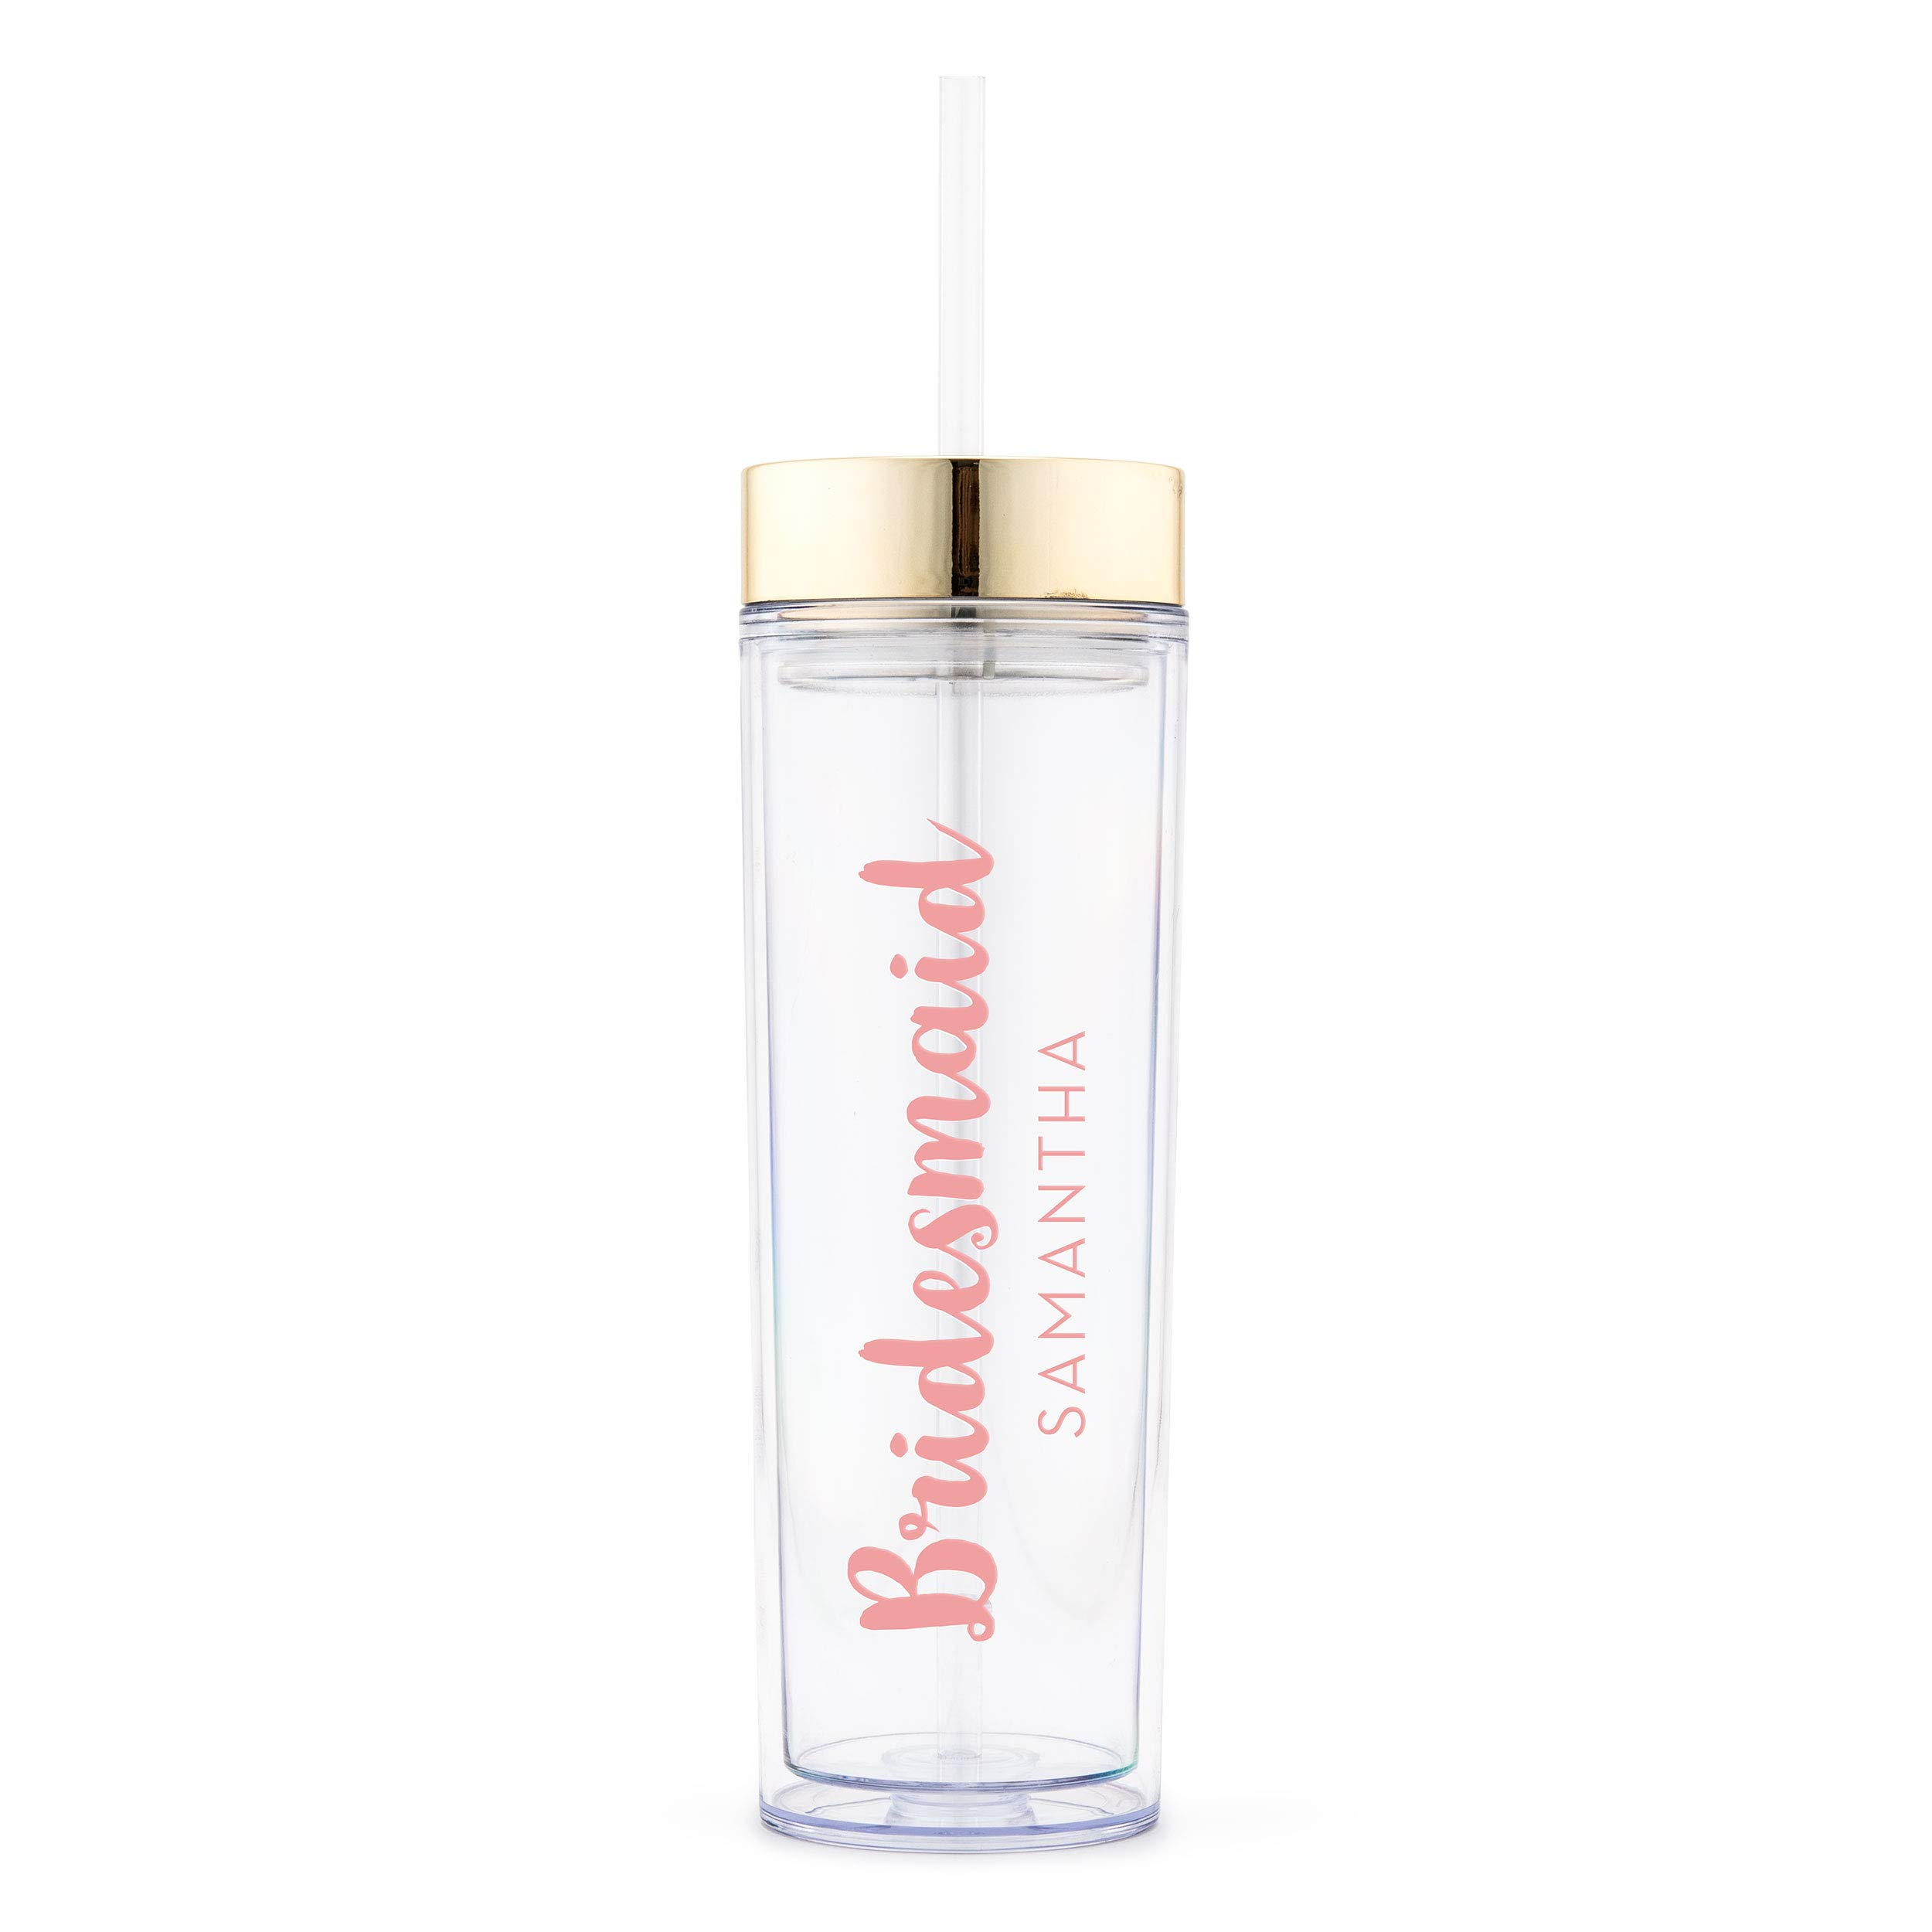 Weddingstar Reusable Water Bottle 16 Ounce – Customizable Eco-Friendly Plastic – 100% BPA-Free Personalized Transparent Party Cup with Straw – Gold – Retro Luxe Bridesmaid